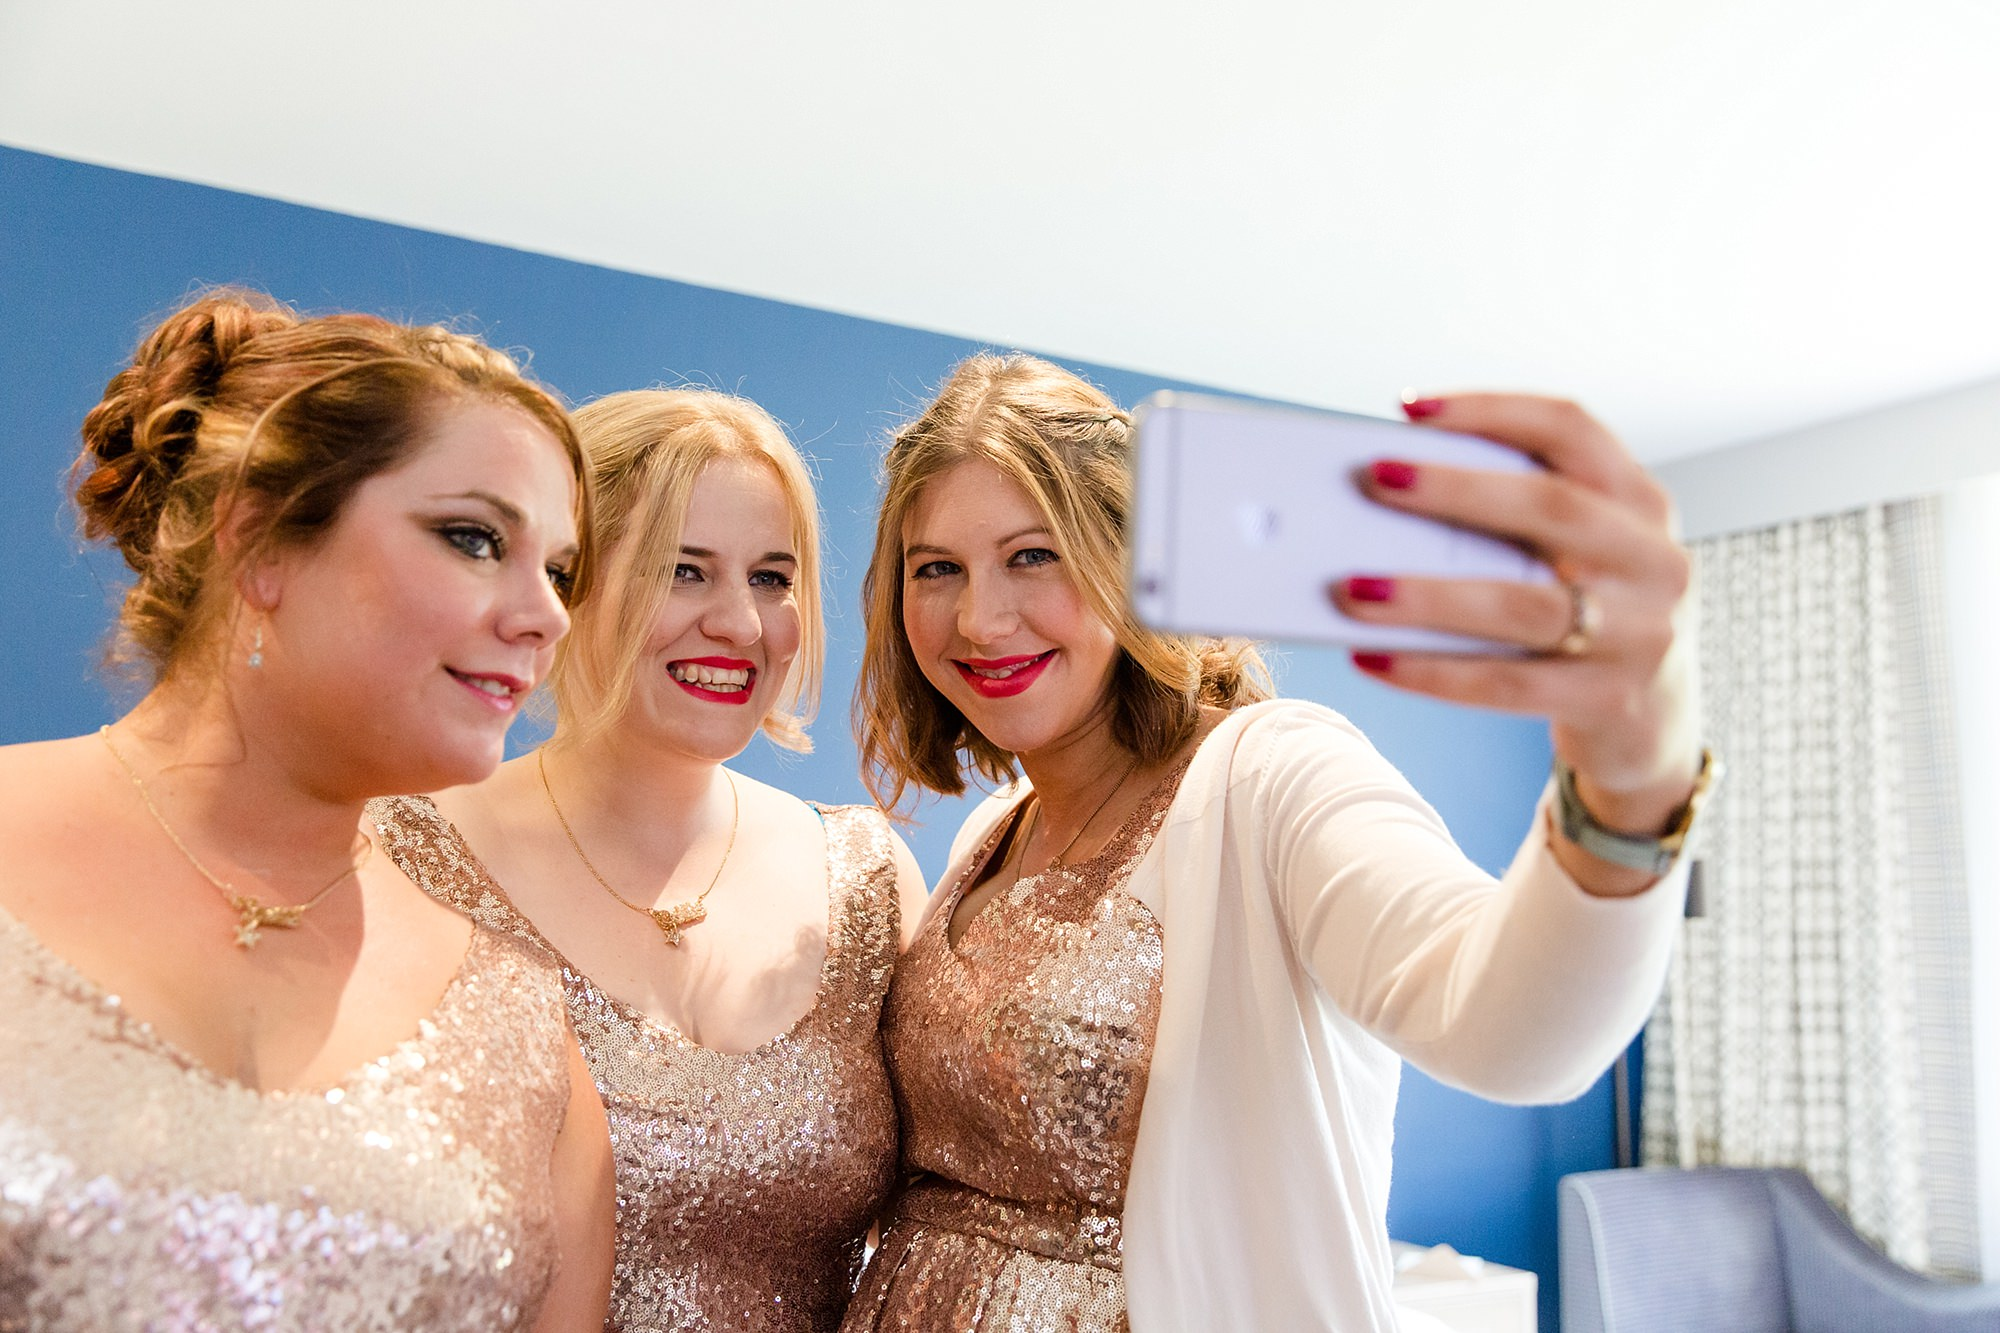 Woodland Weddings Tring bridesmaids selfie